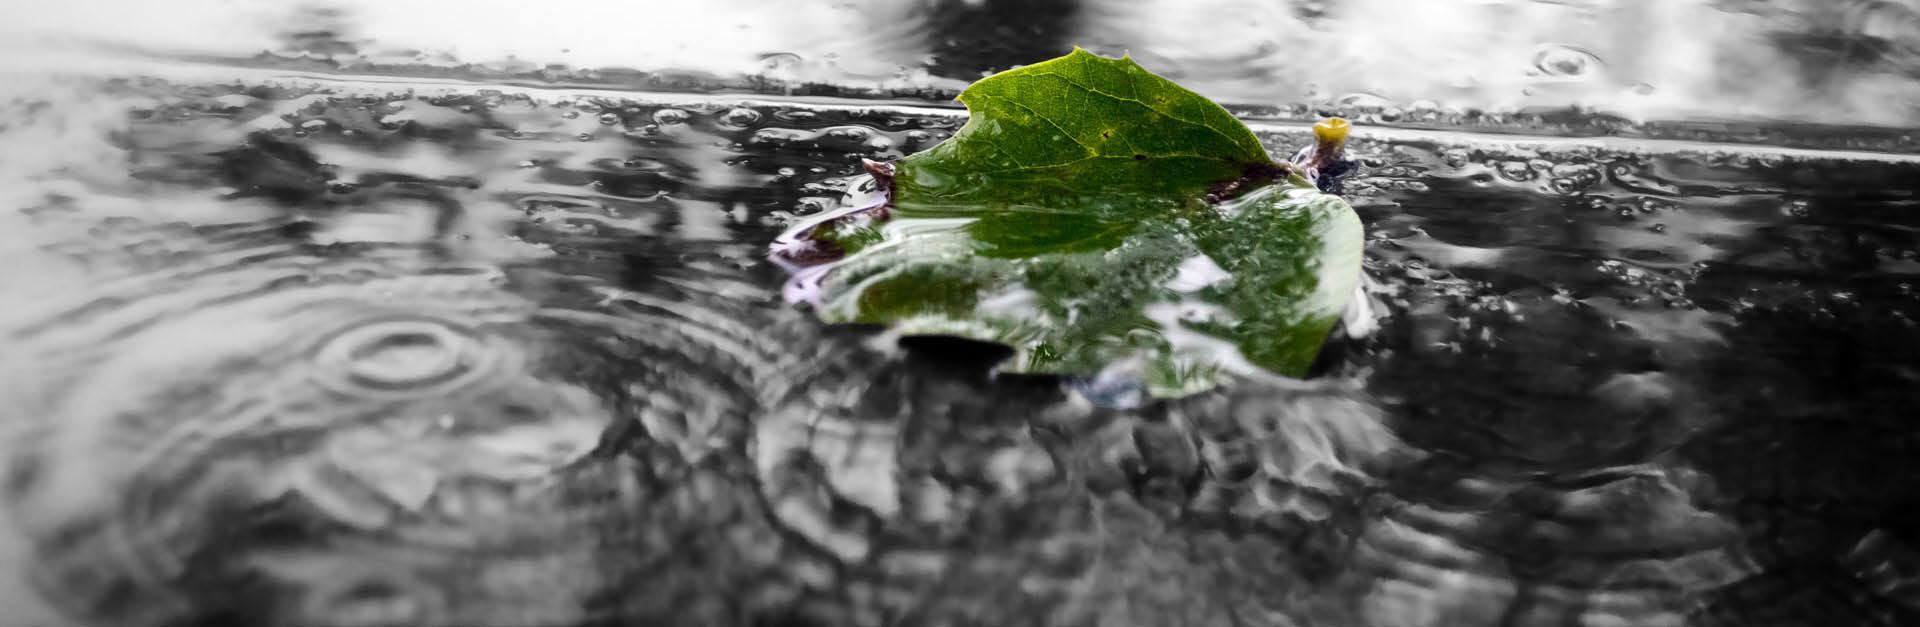 Ideabook 001 Cover Pic - Leaf in Puddle